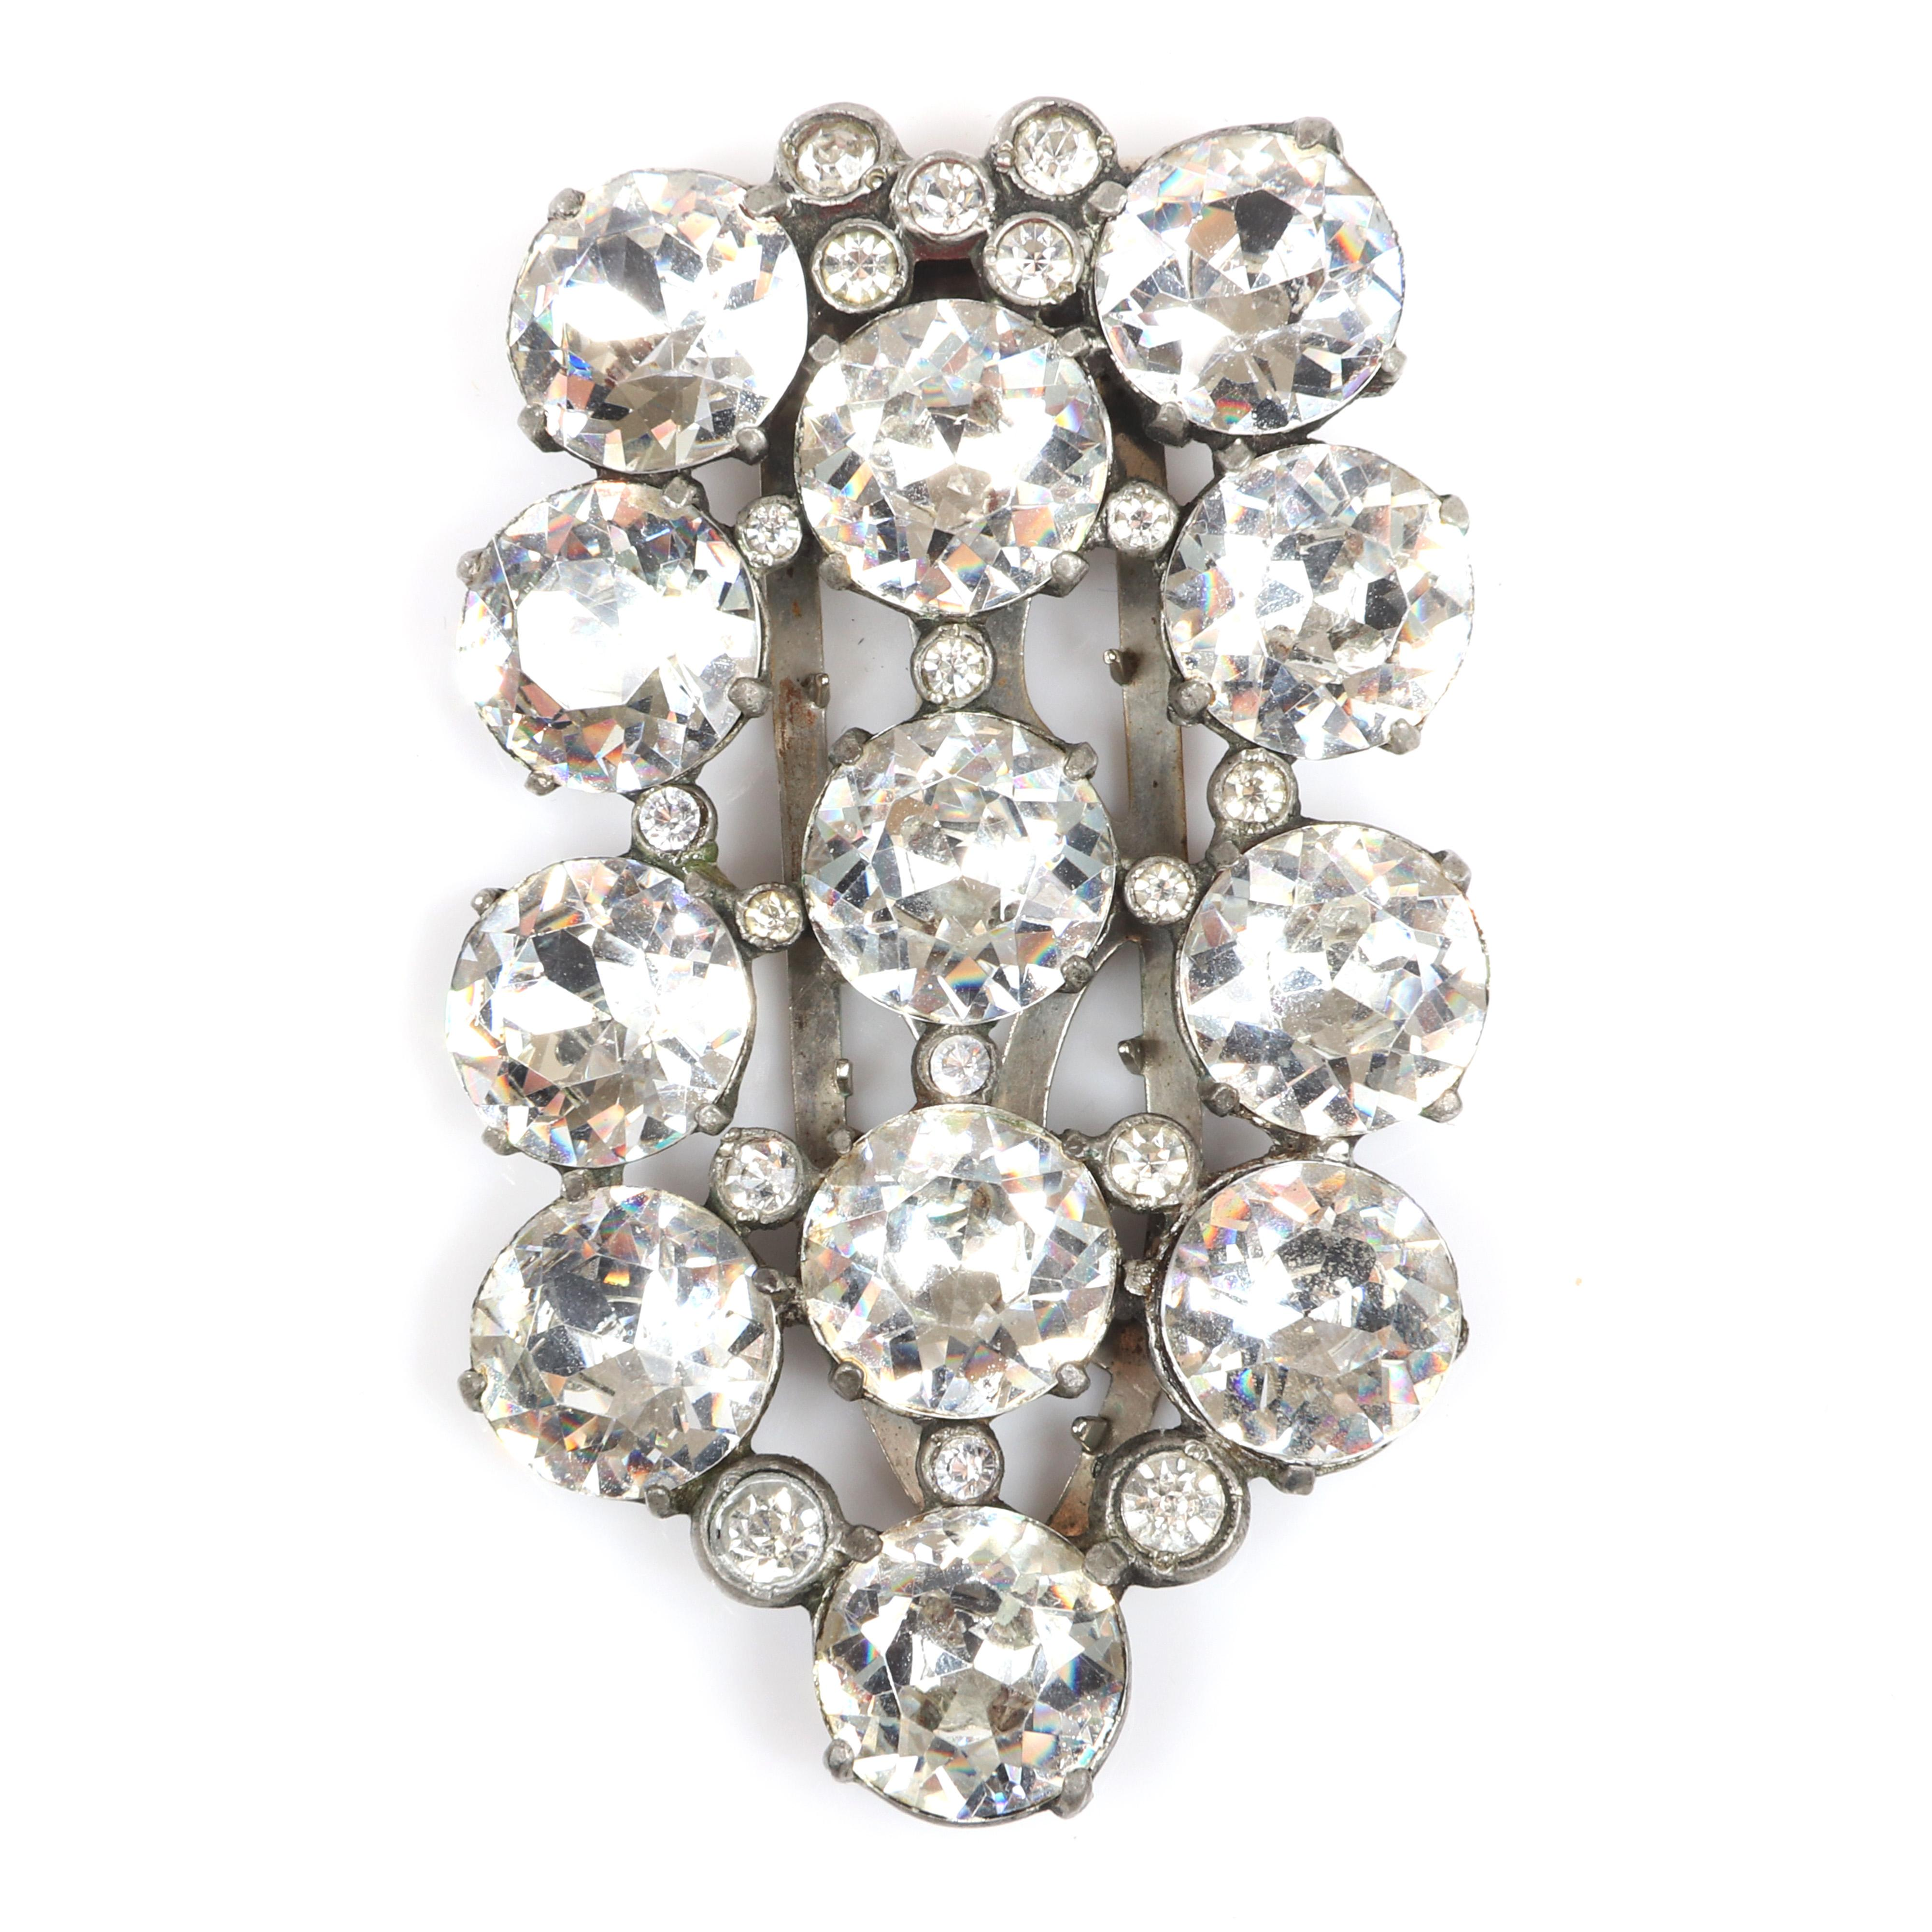 "Eisenberg Originals shield form dress clip with huge round faceted jewel crystals separated by bezel-set rhinestones, c. 1940s. 3"" x 1 1/4"""